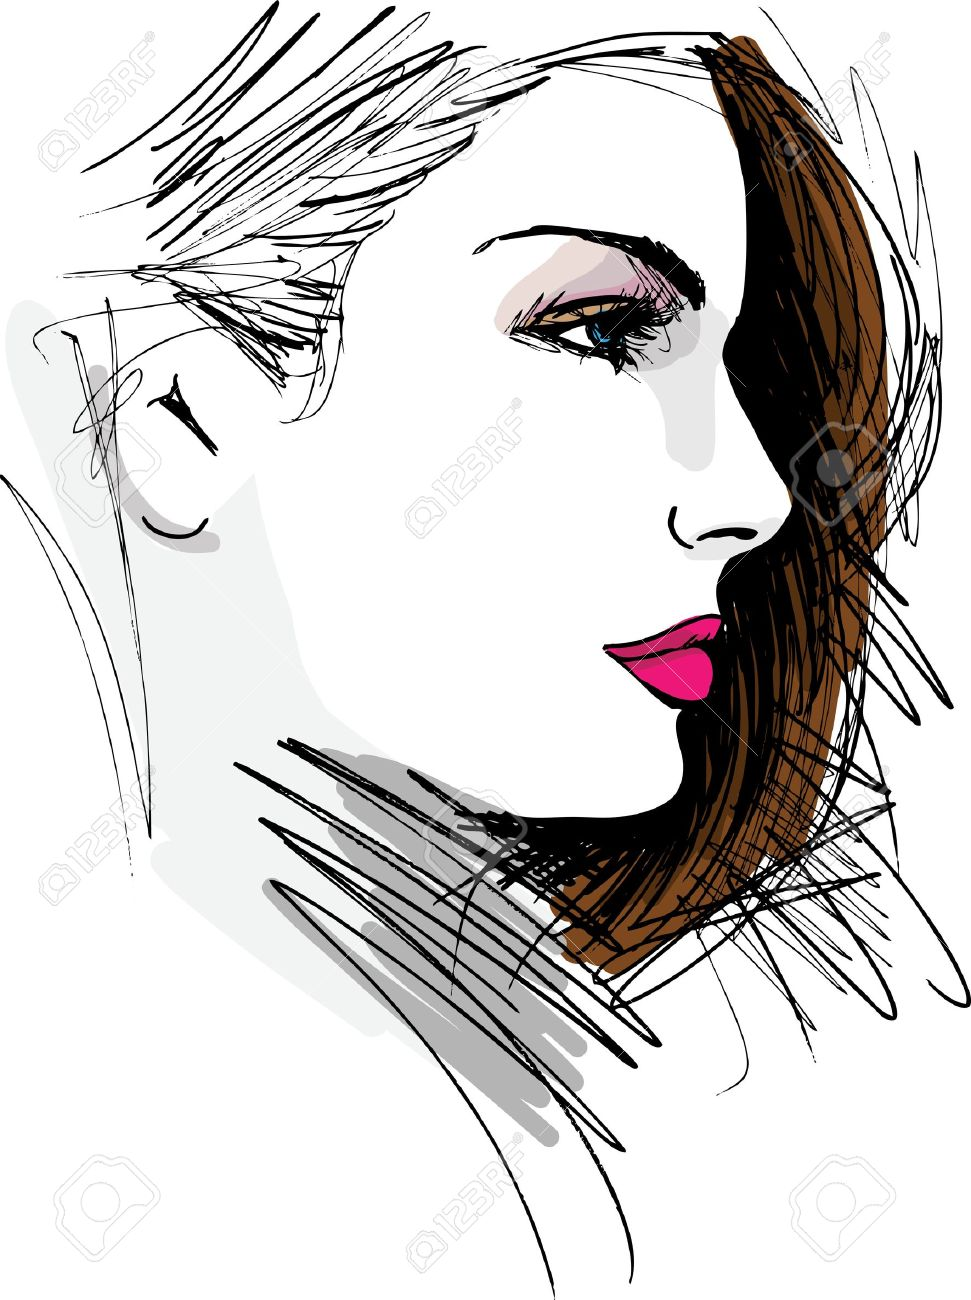 Hand drawn sketch of Beautiful Woman face illustration - 15081368